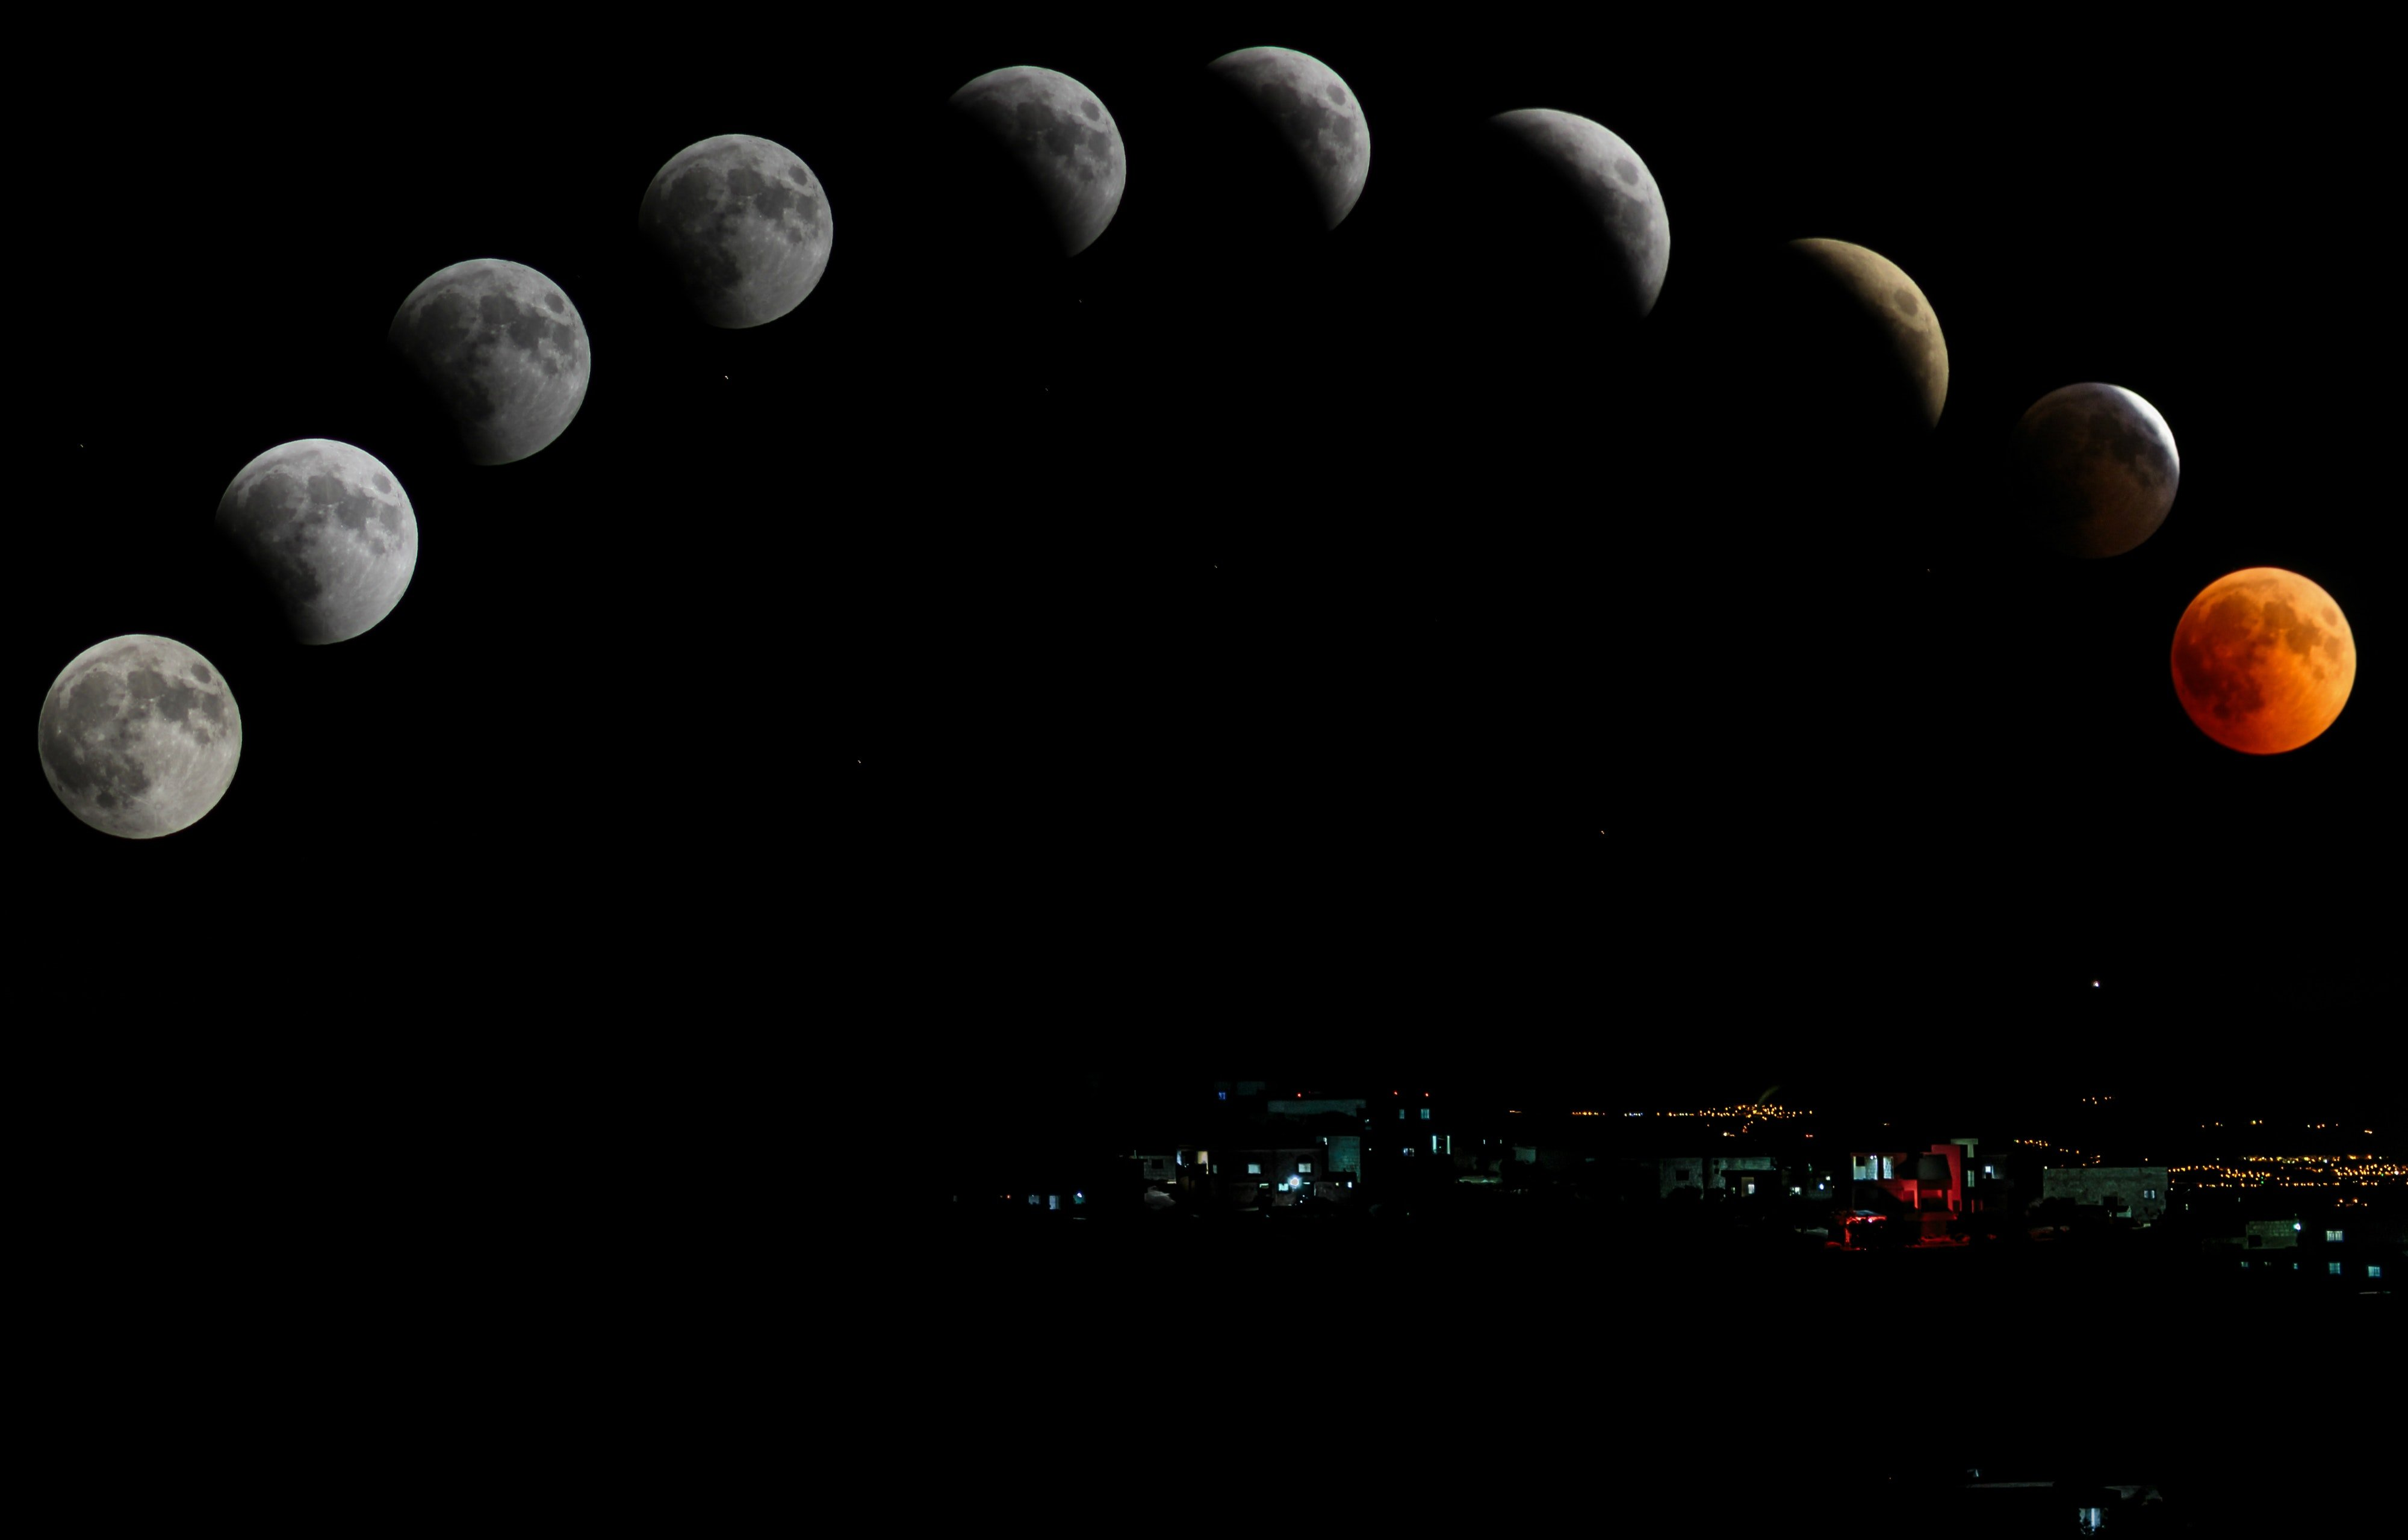 Timelapse photography of moon. | Source: Pexels